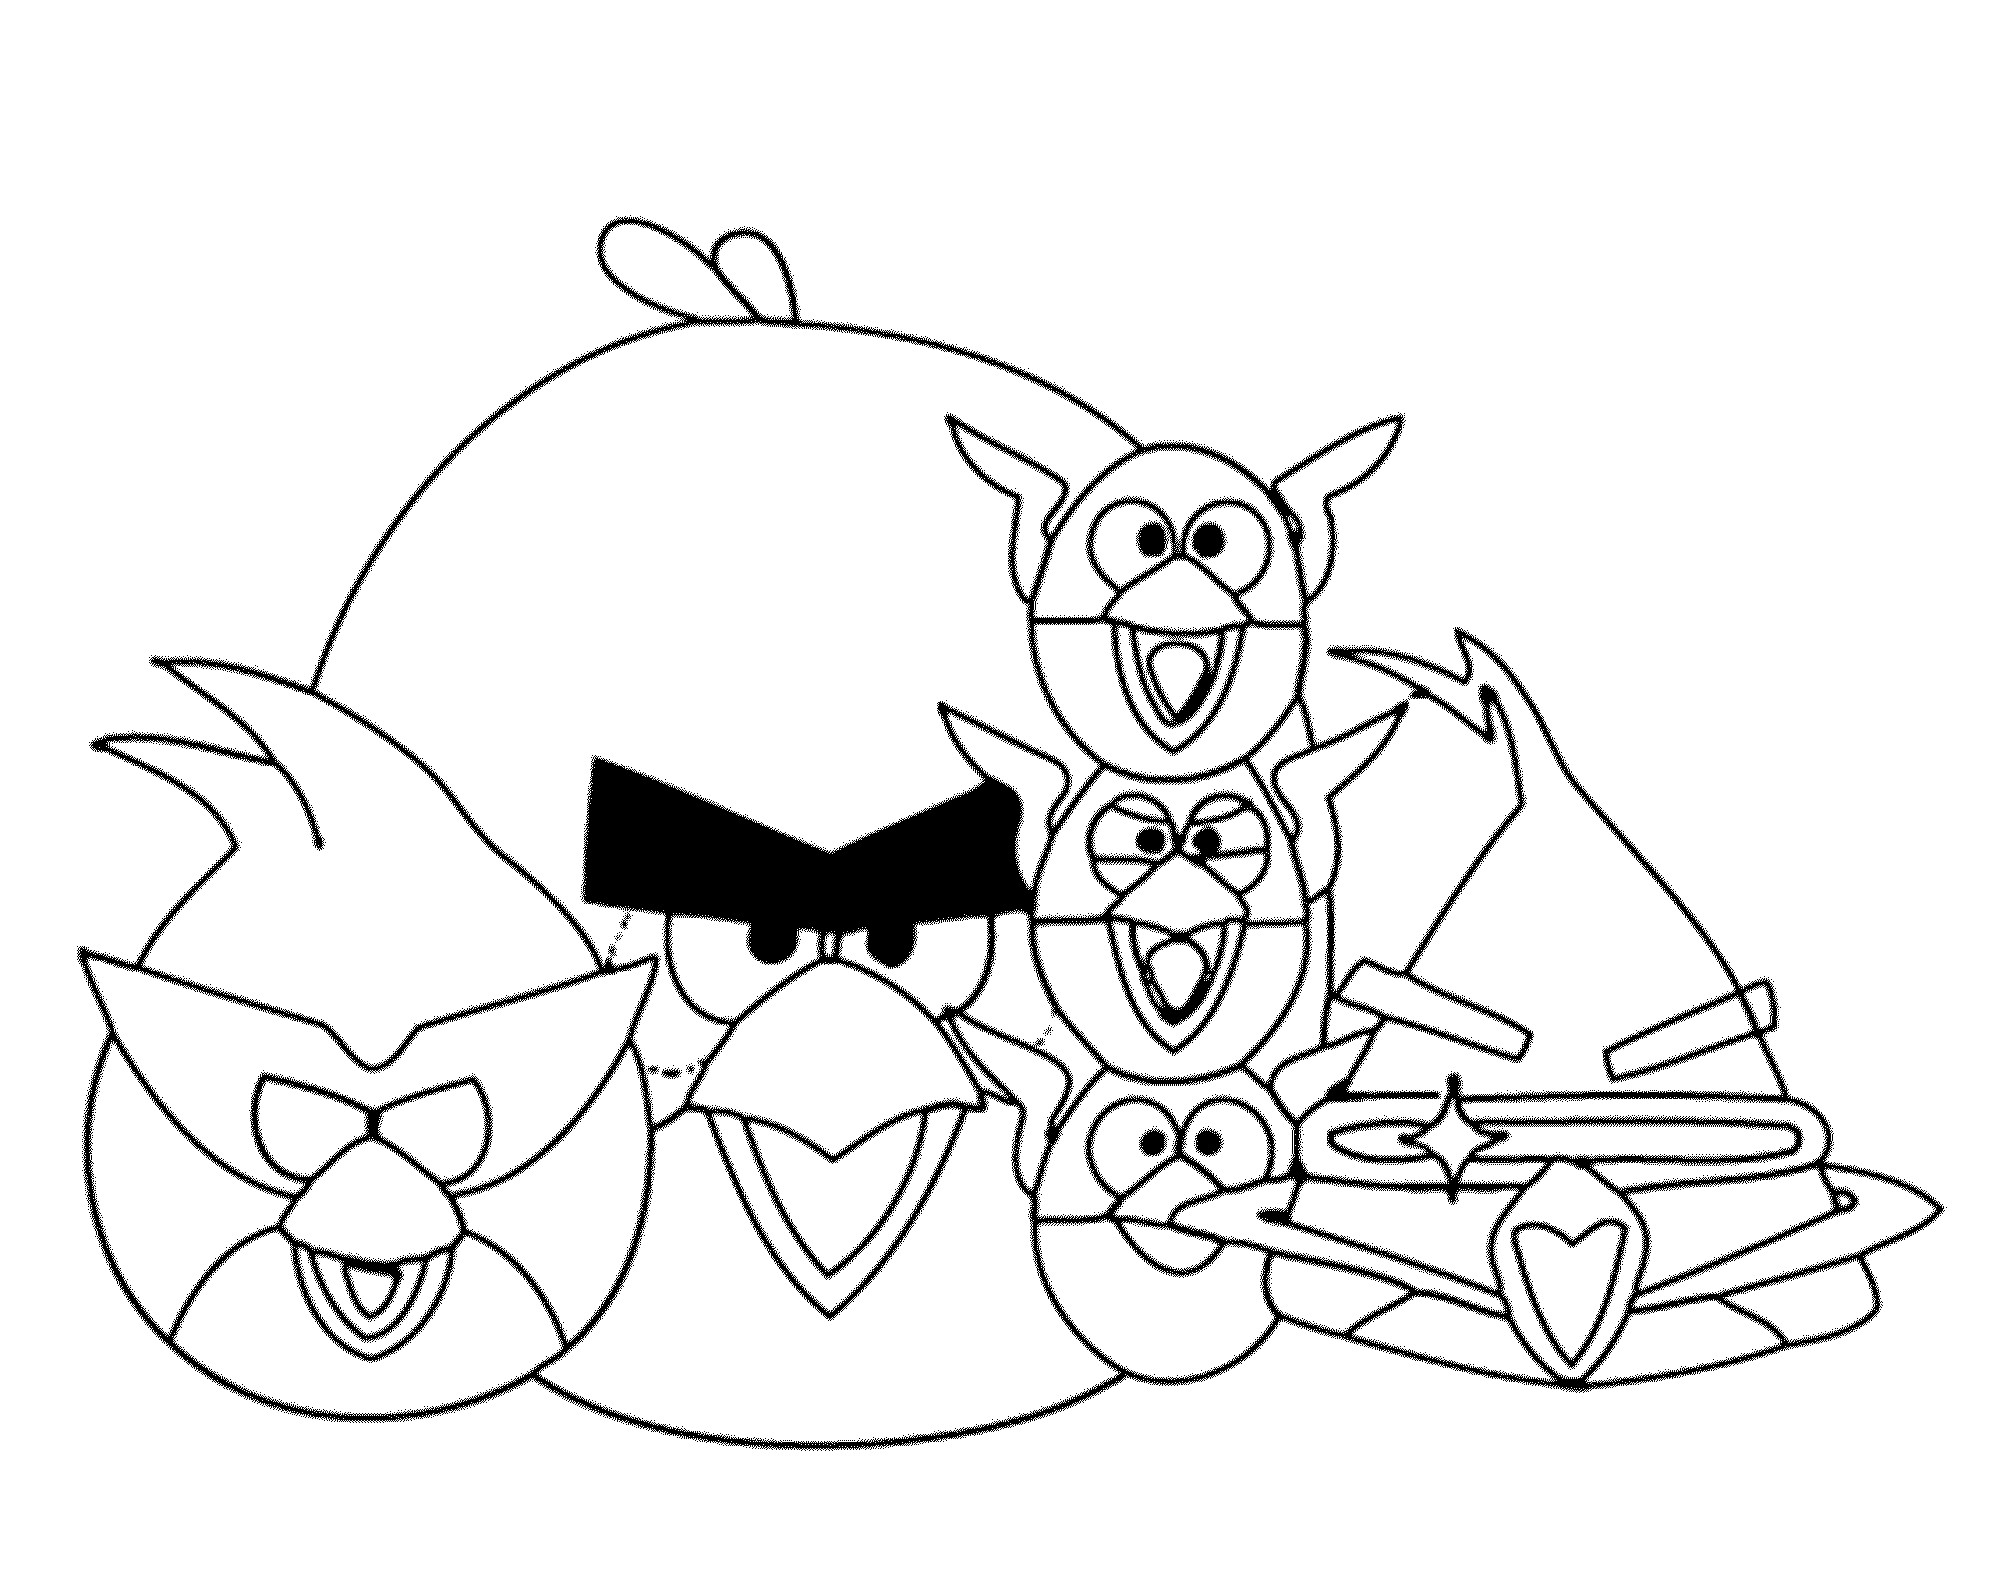 2000x1572 Free Printable Angry Birds Star Wars Coloring Pages Free Draw